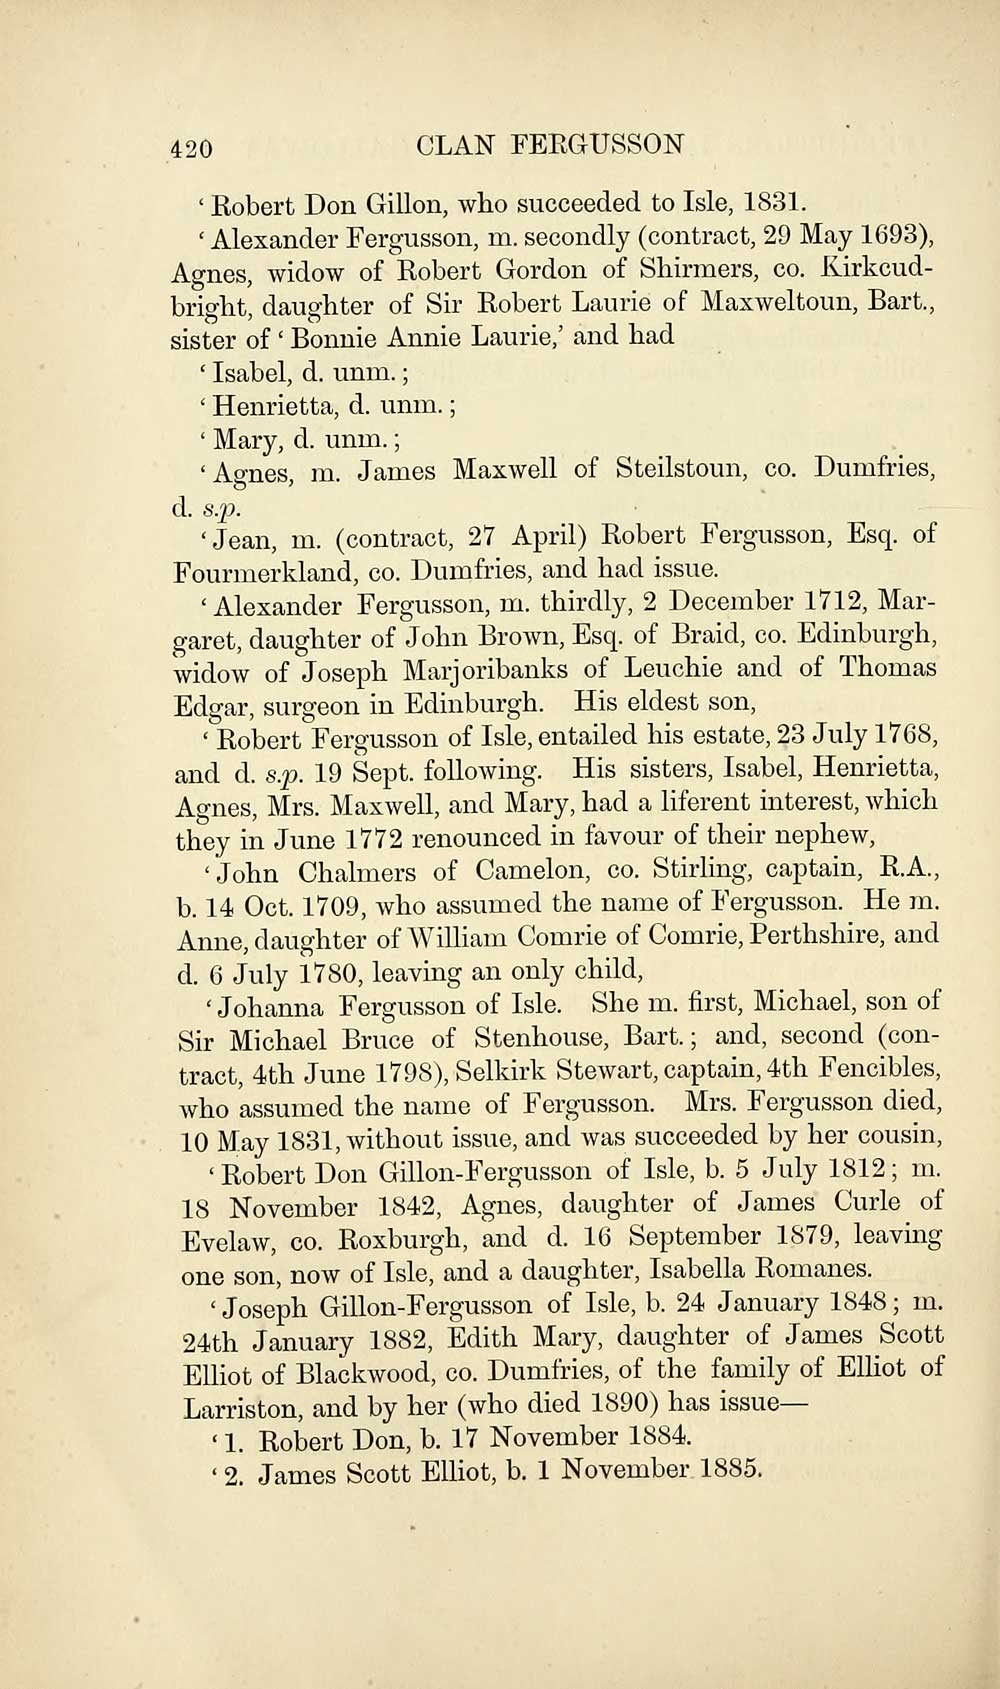 472) Page 420 - Records of the clan and name of Fergusson, Ferguson